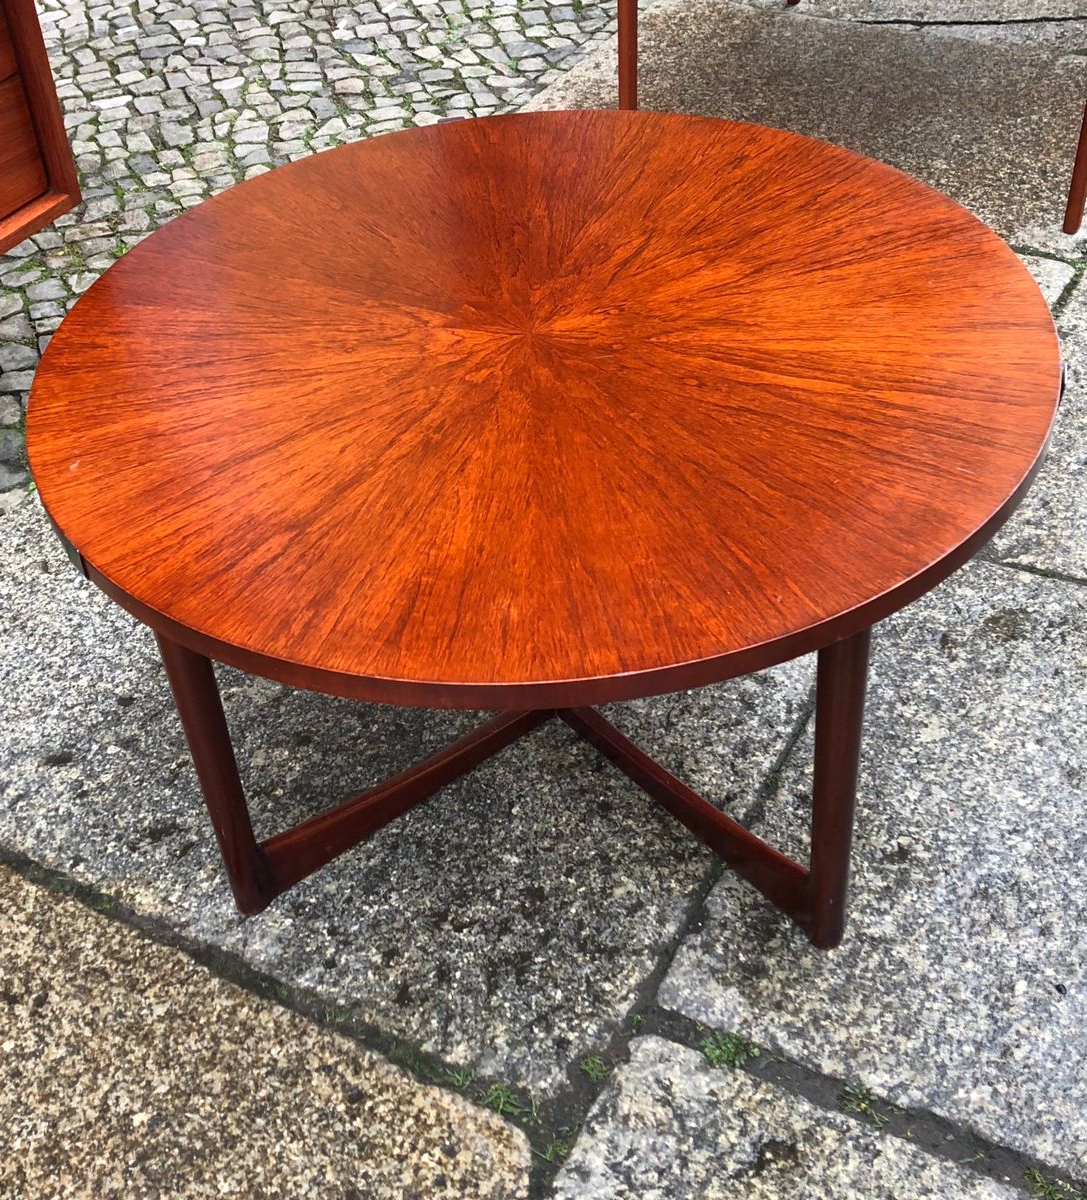 Round Teak Coffee Tables Inside Well Liked Round Teak Starburst Table From Mcintosh, 1960s For Sale At Pamono (View 10 of 20)